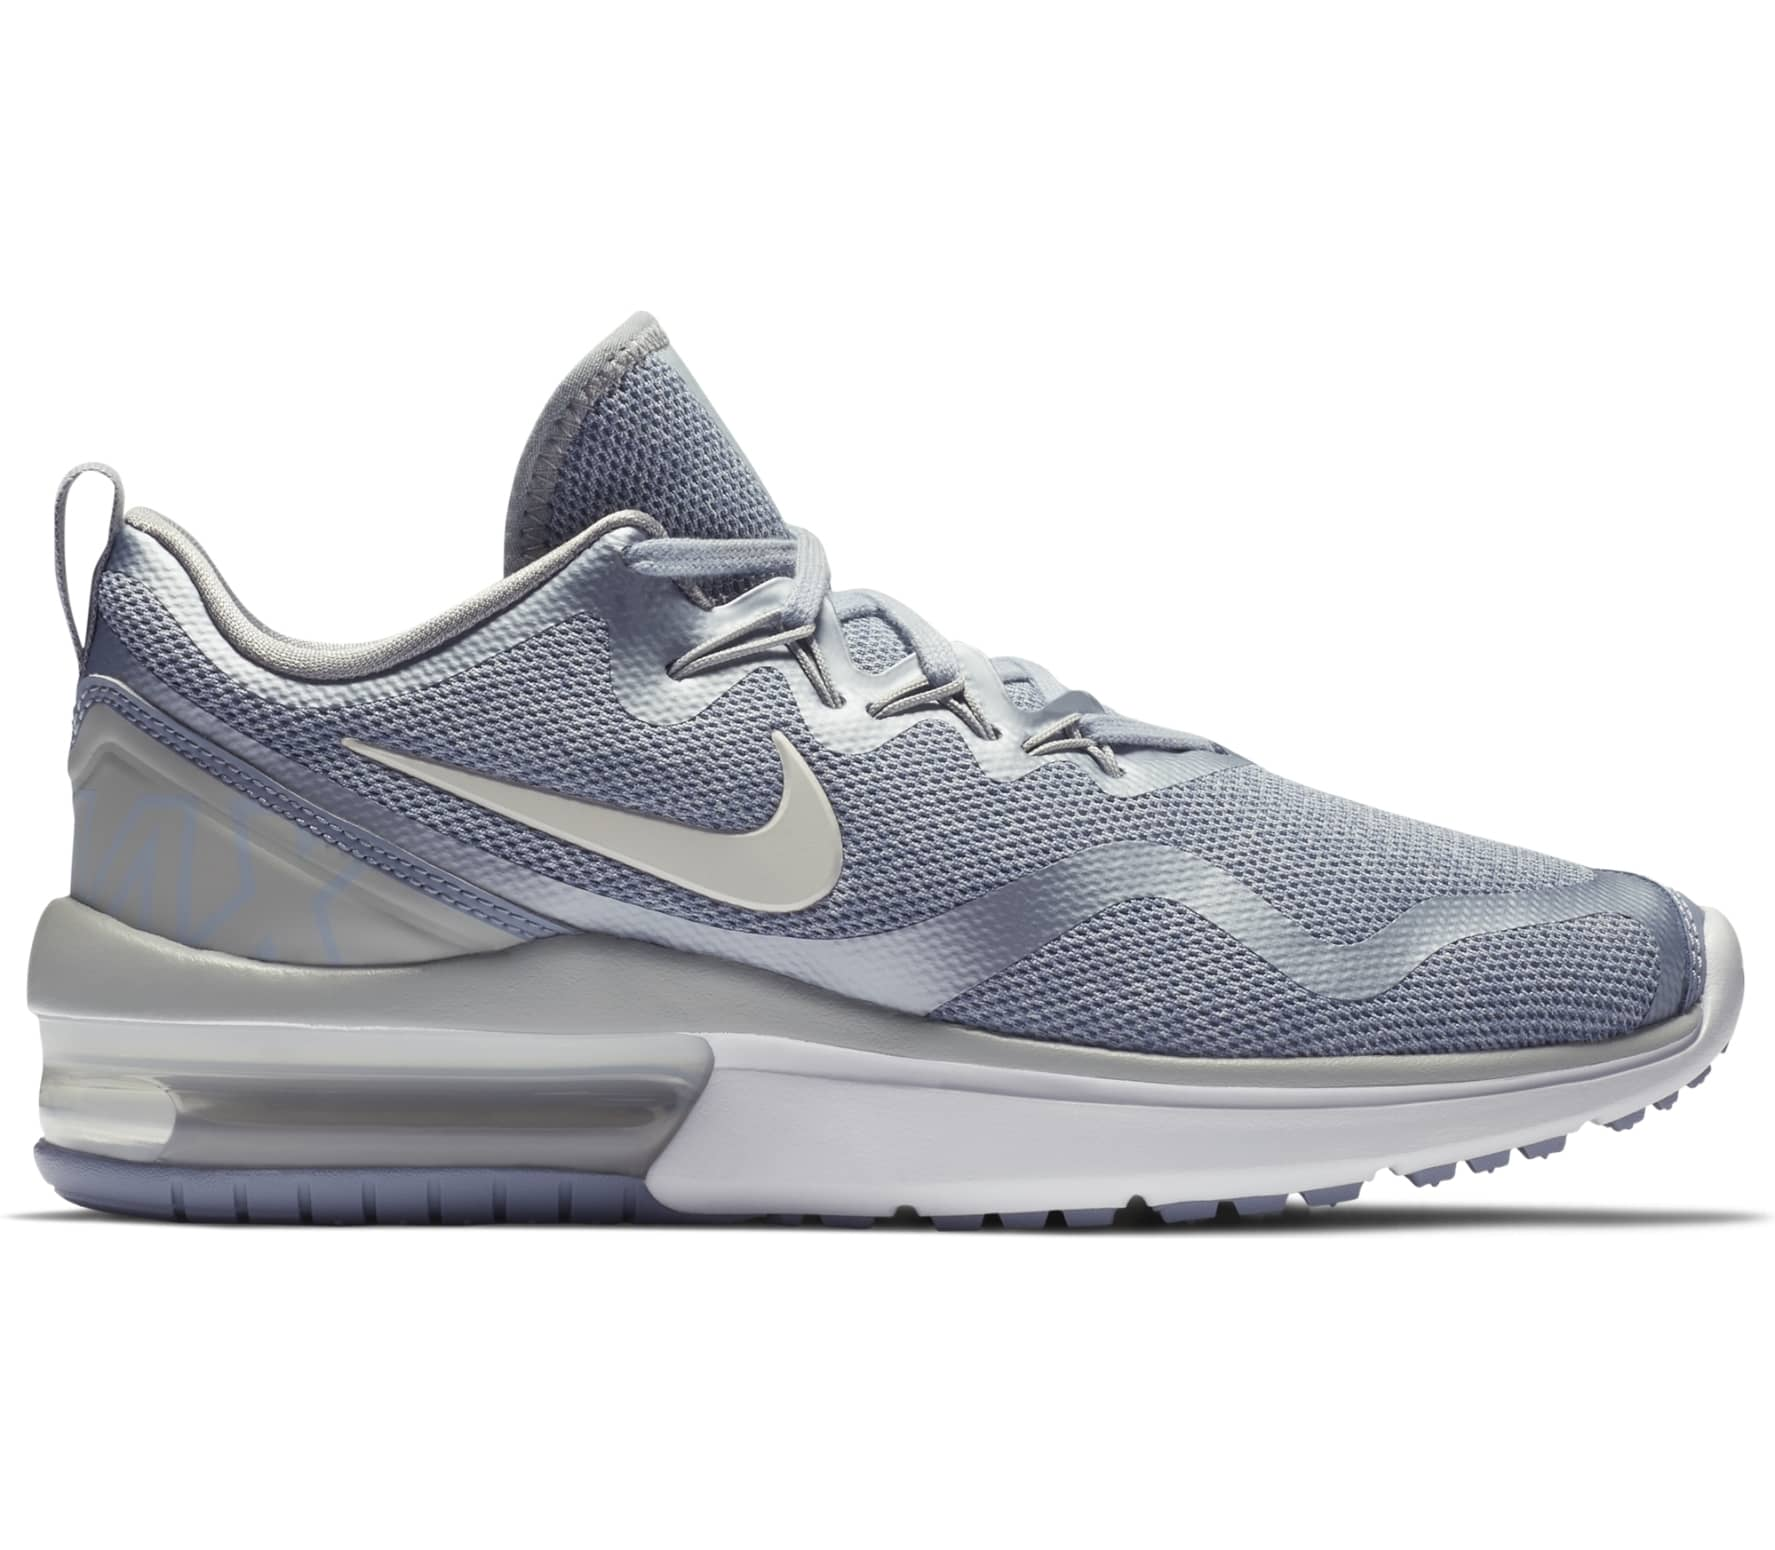 cheaper e3d4f c83c4 Nike - Air Max Fury women s running shoes (light grey)